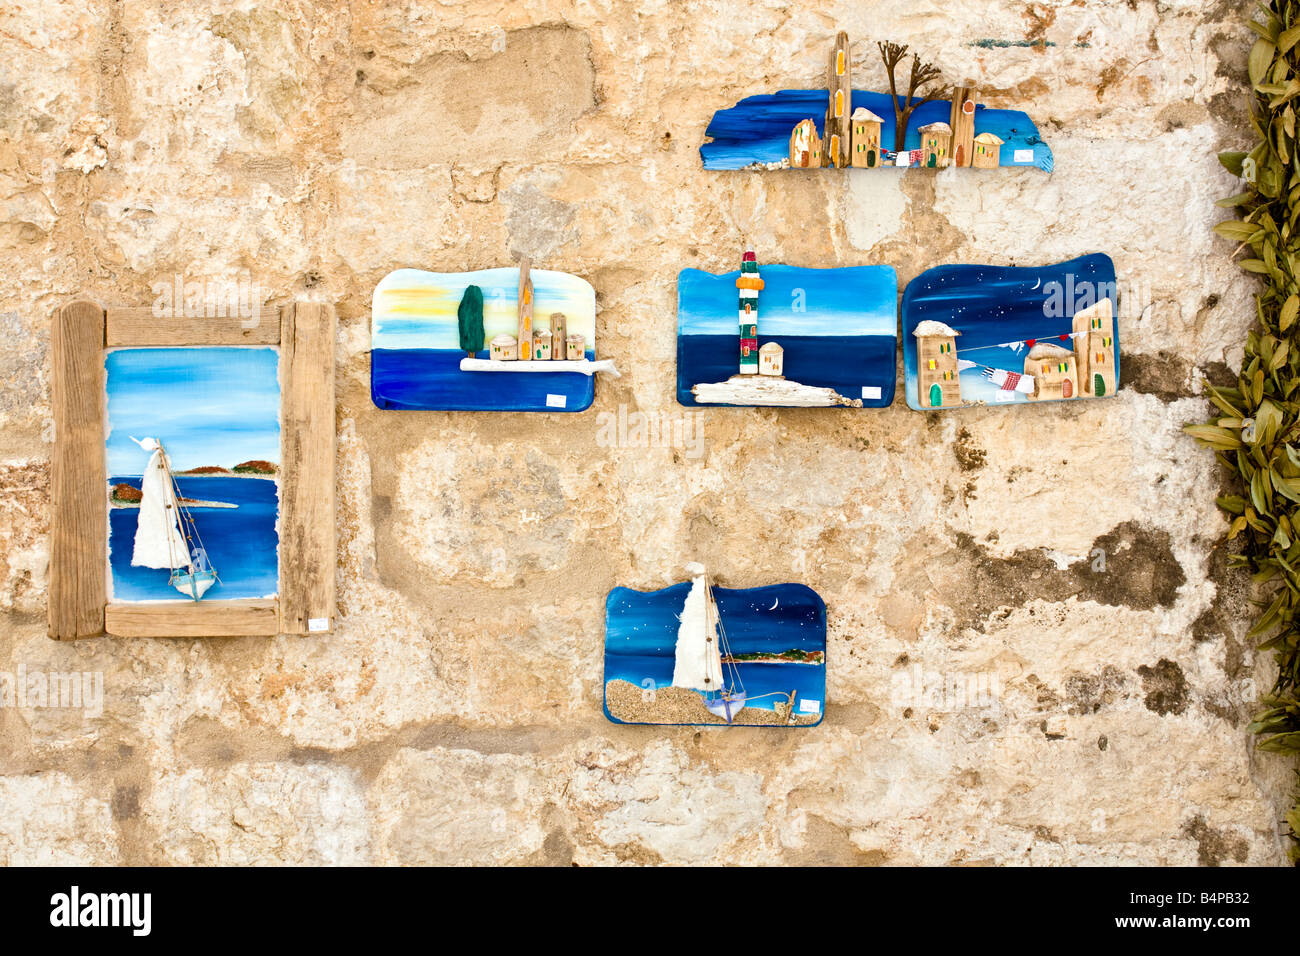 Wall Plaques Stock Photos & Wall Plaques Stock Images - Alamy